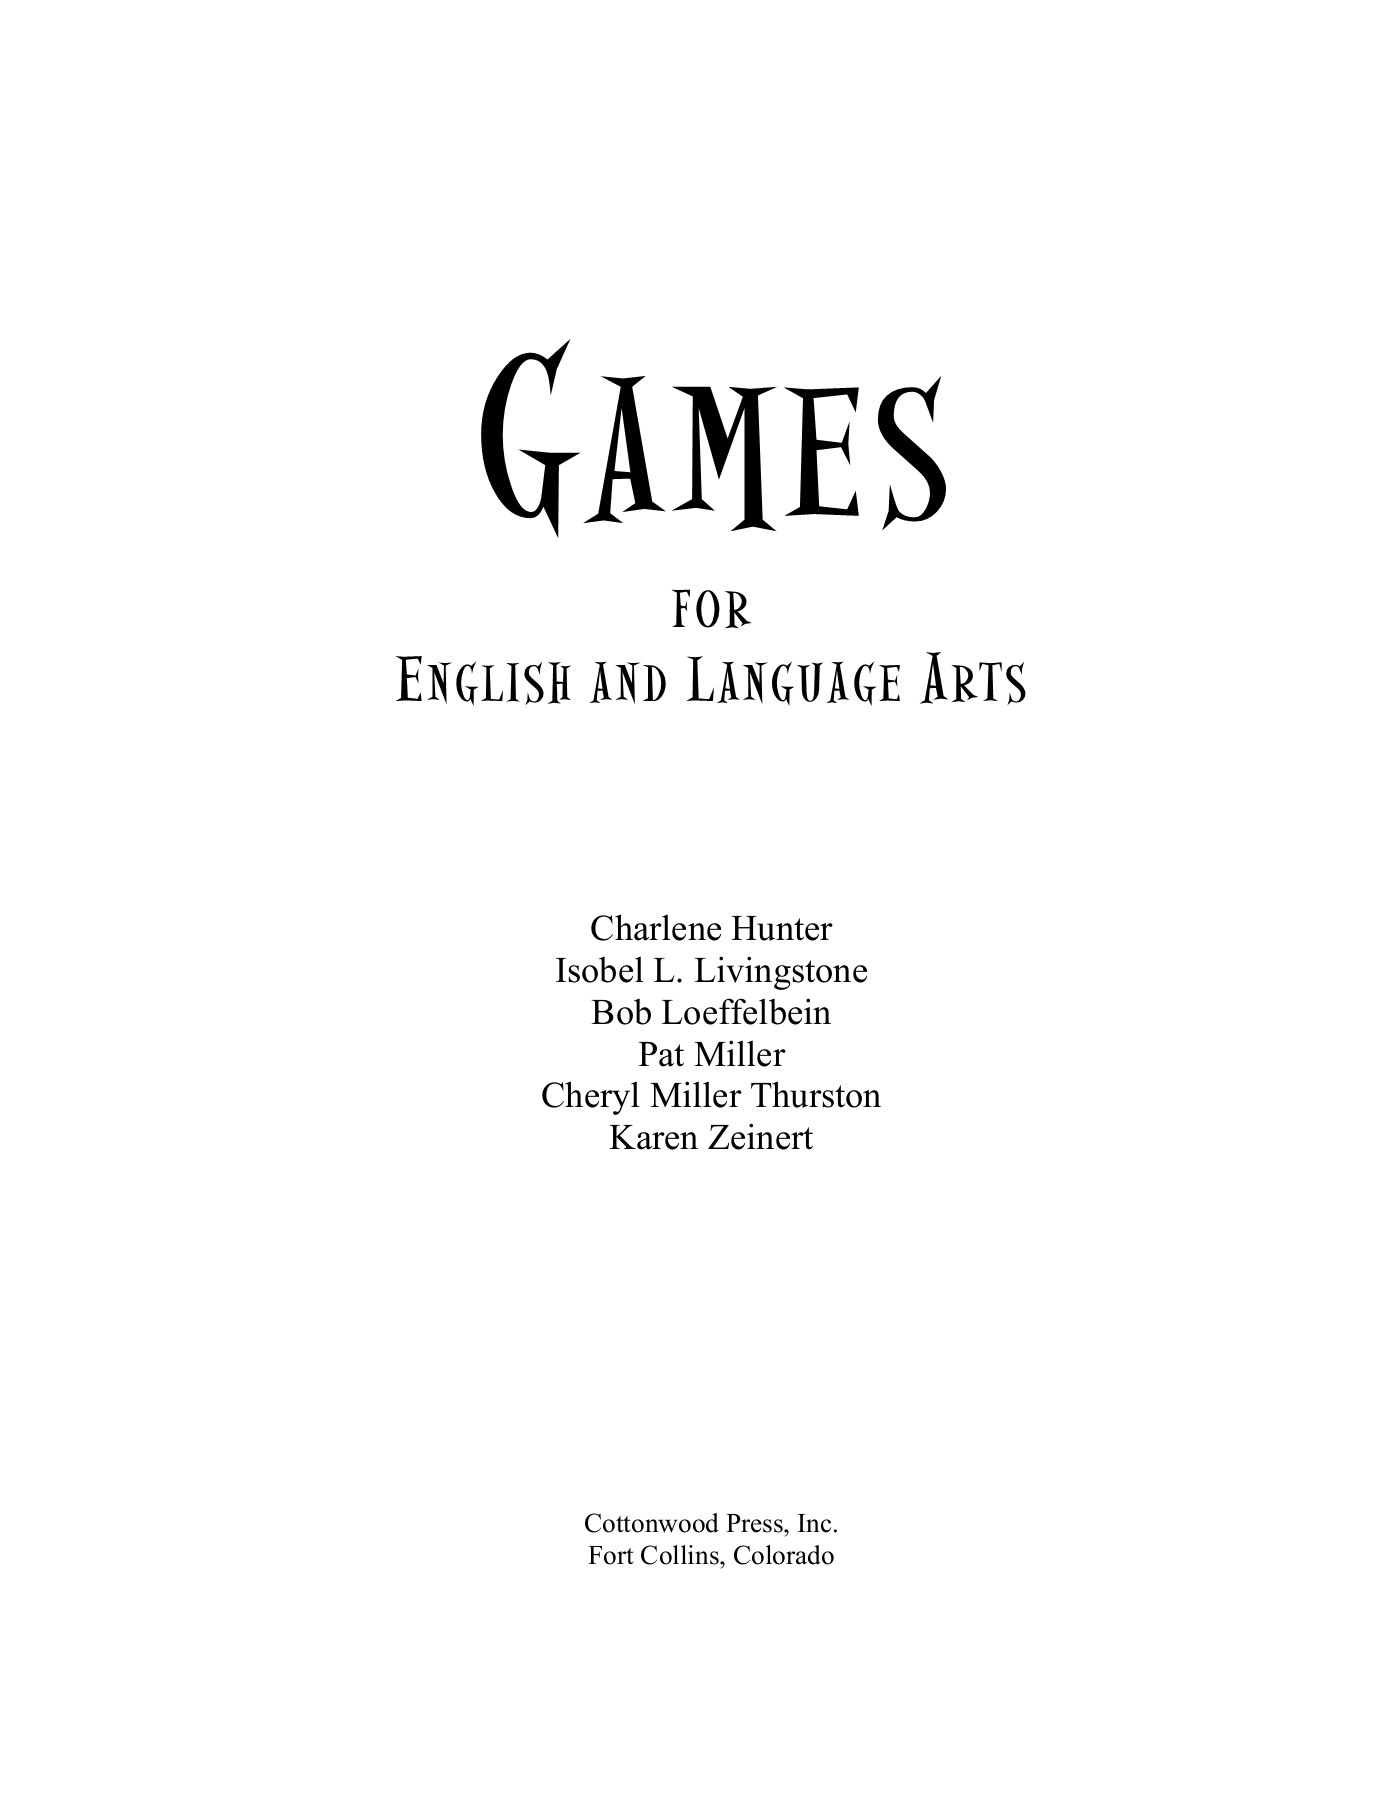 hight resolution of Games for English and Language Arts-Flip eBook Pages 1 - 50  AnyFlip    AnyFlip